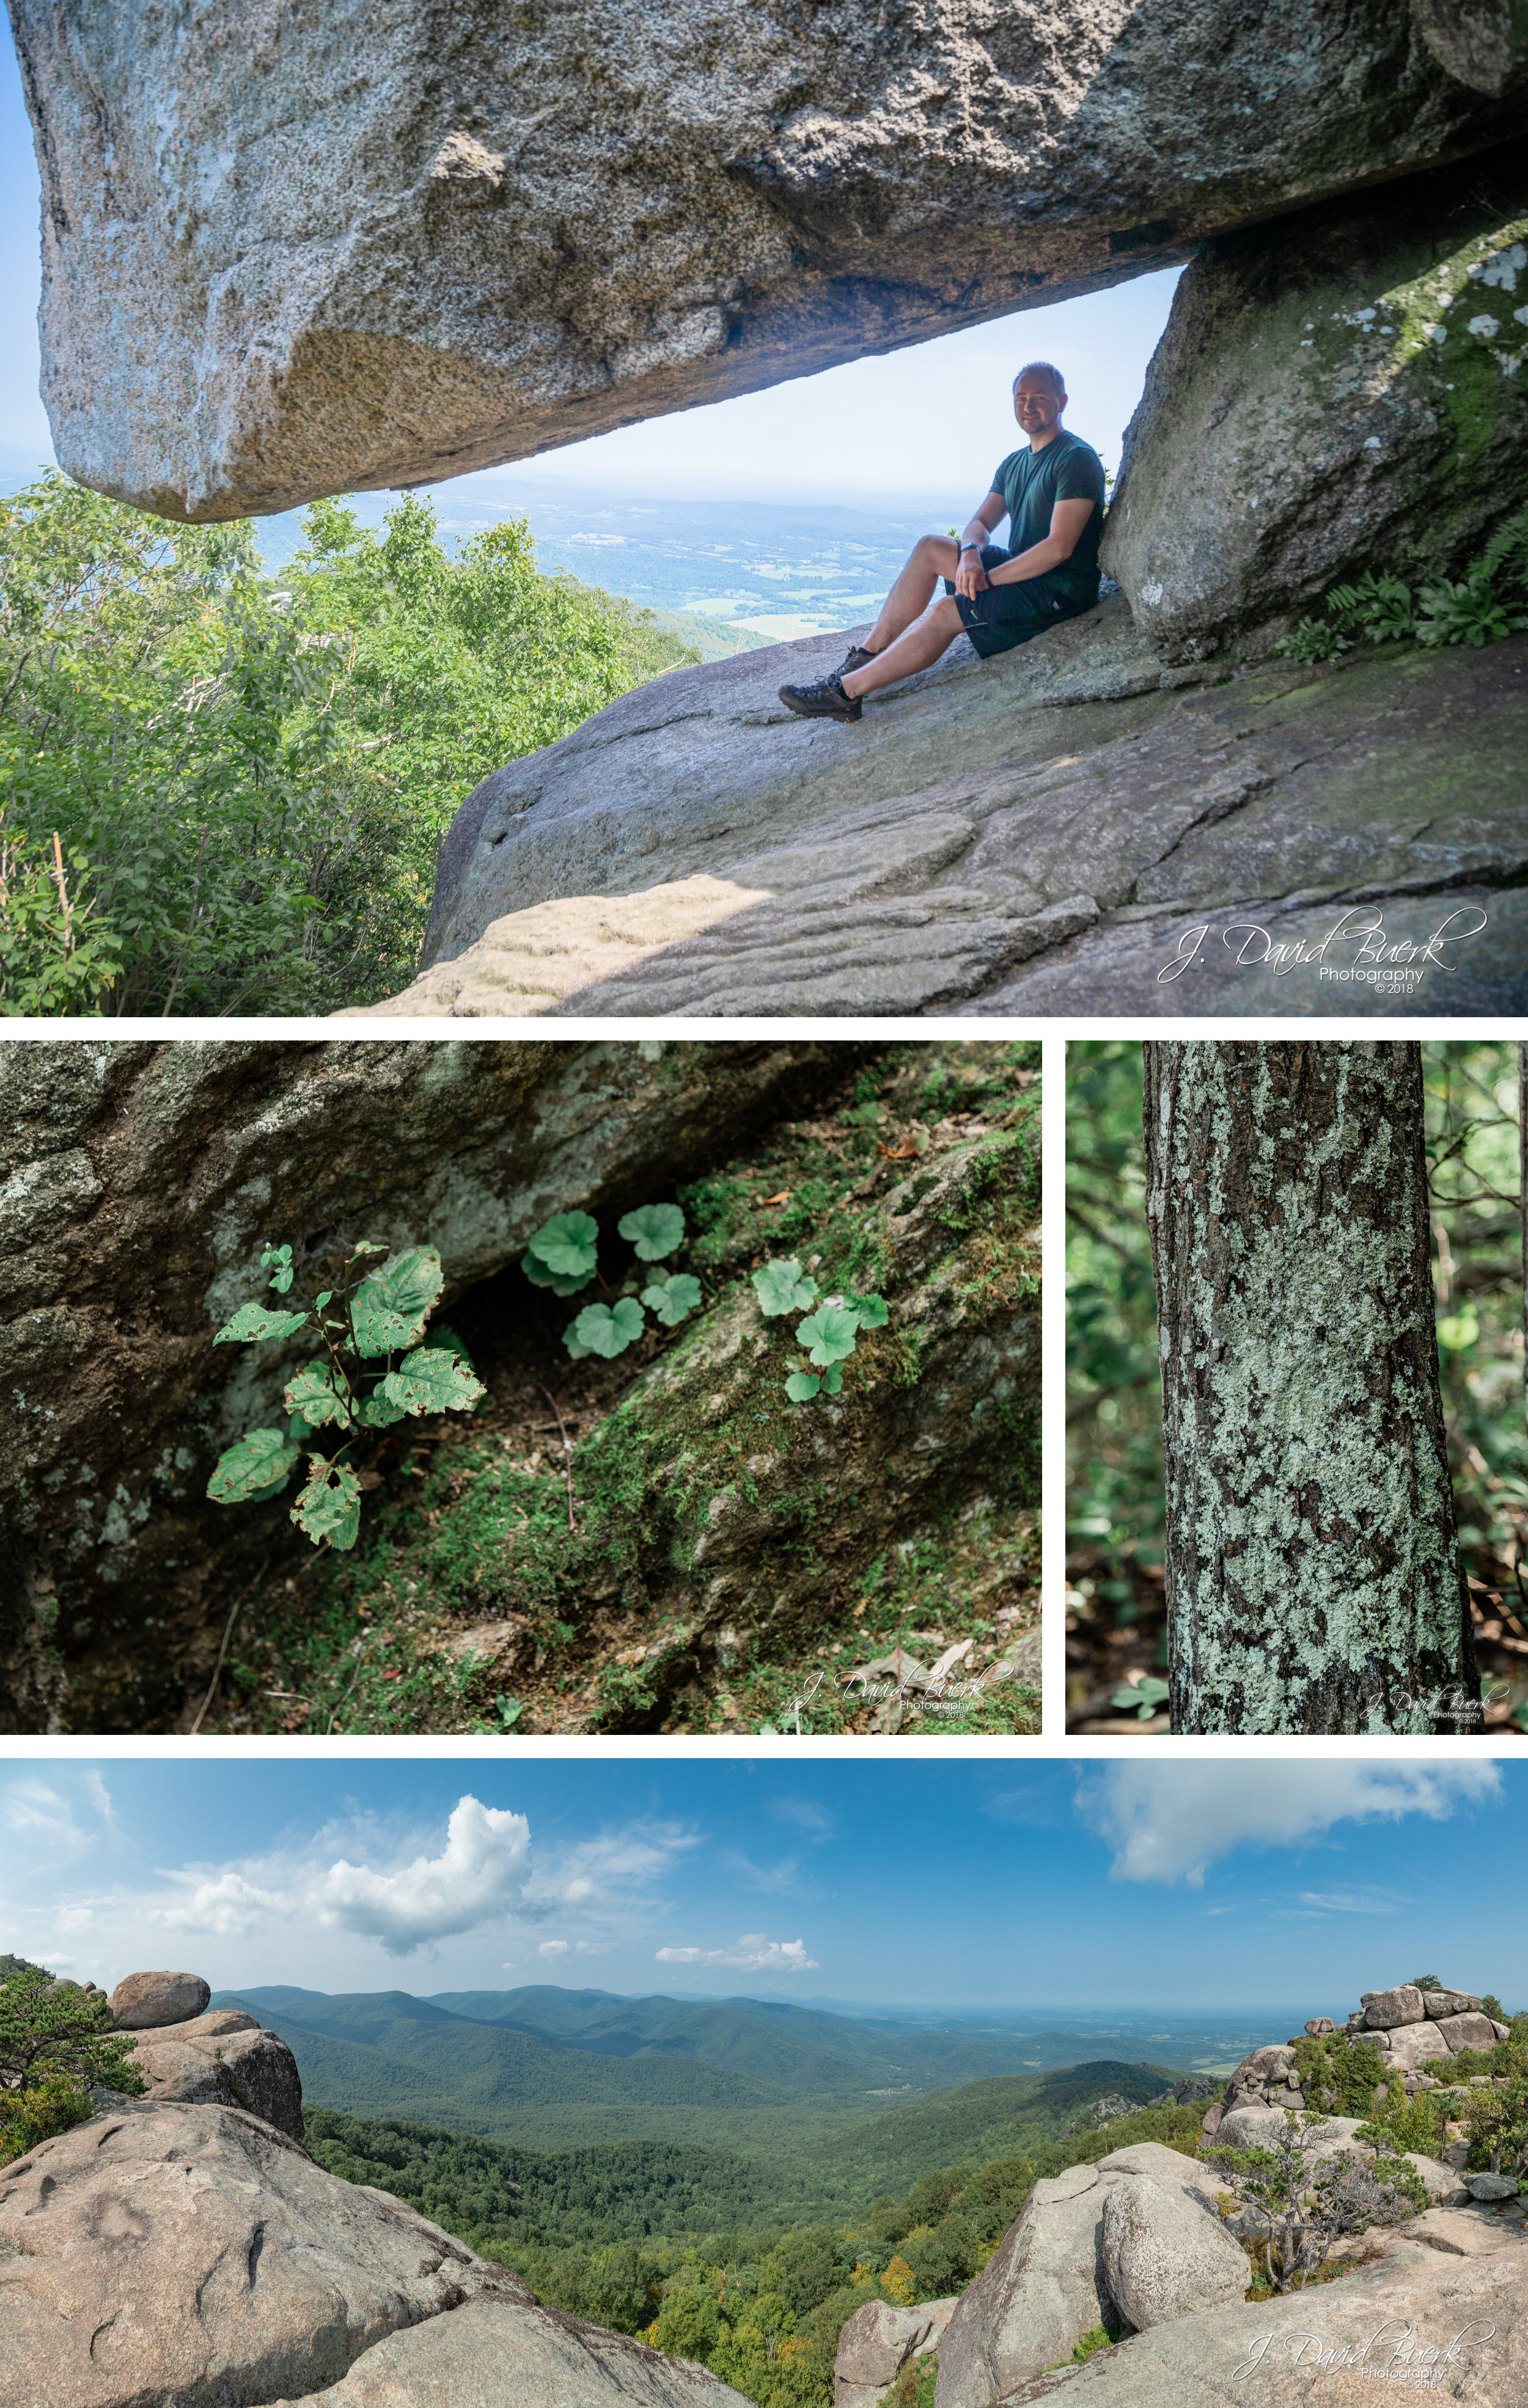 20180826 - Old Rag Mountain August 2018 6.jpg